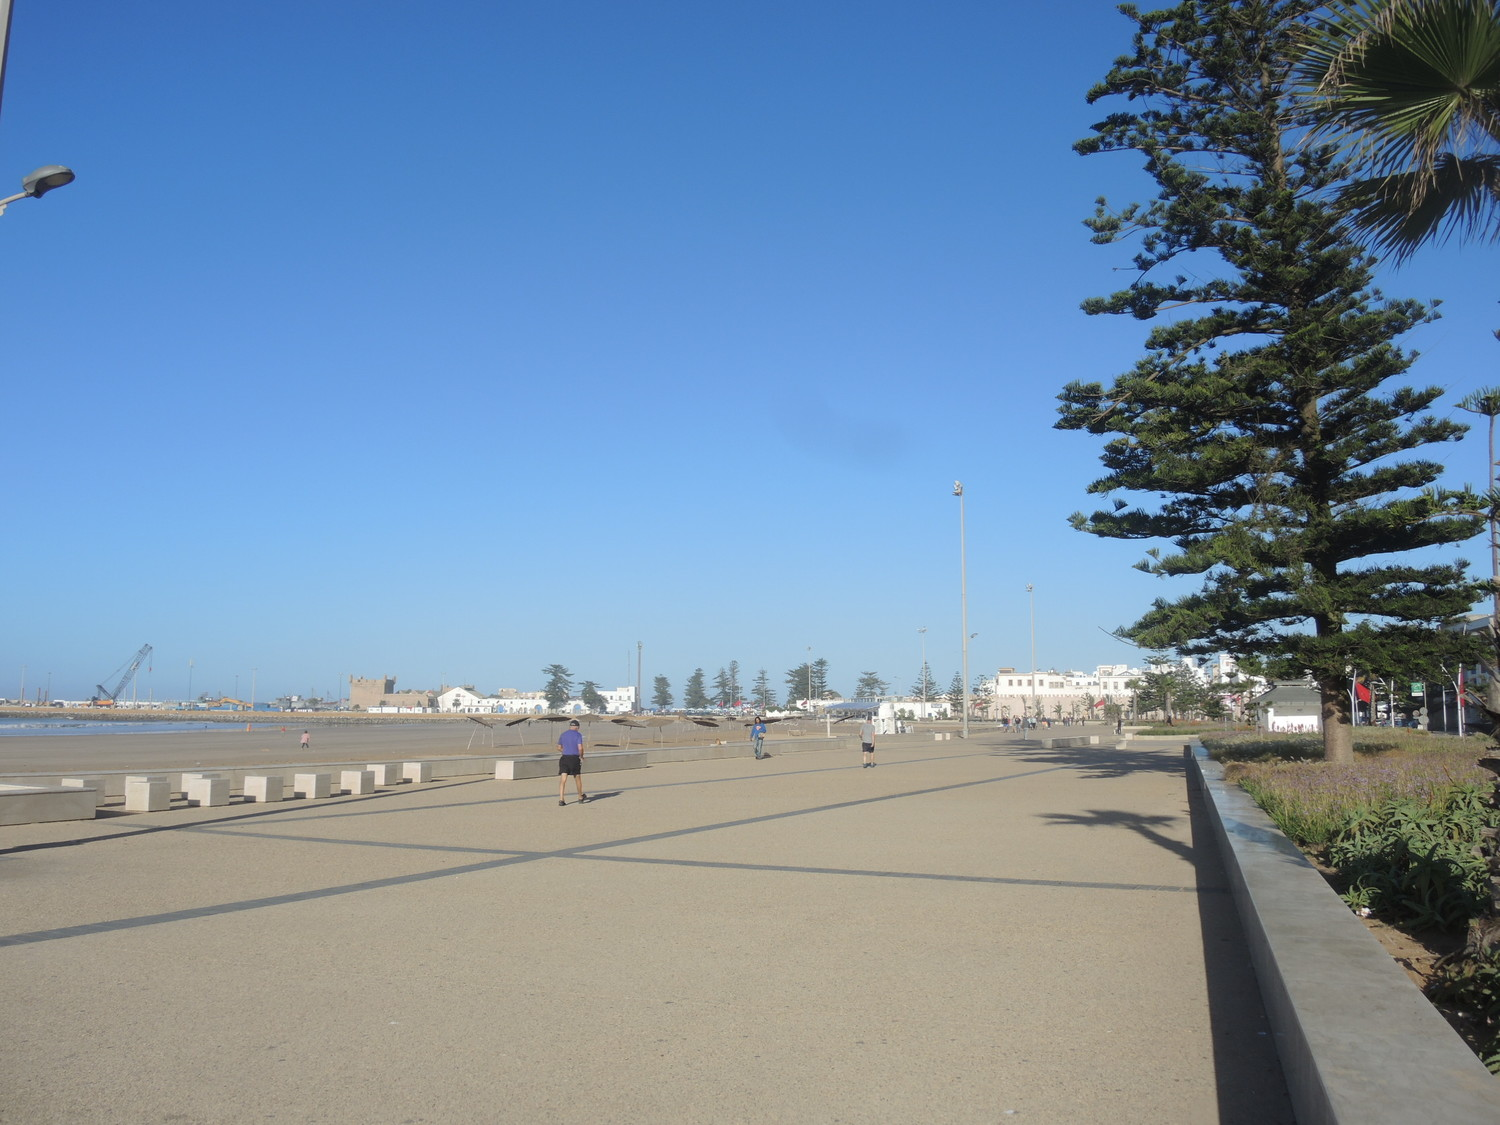 Promenade of Essaouira at day time